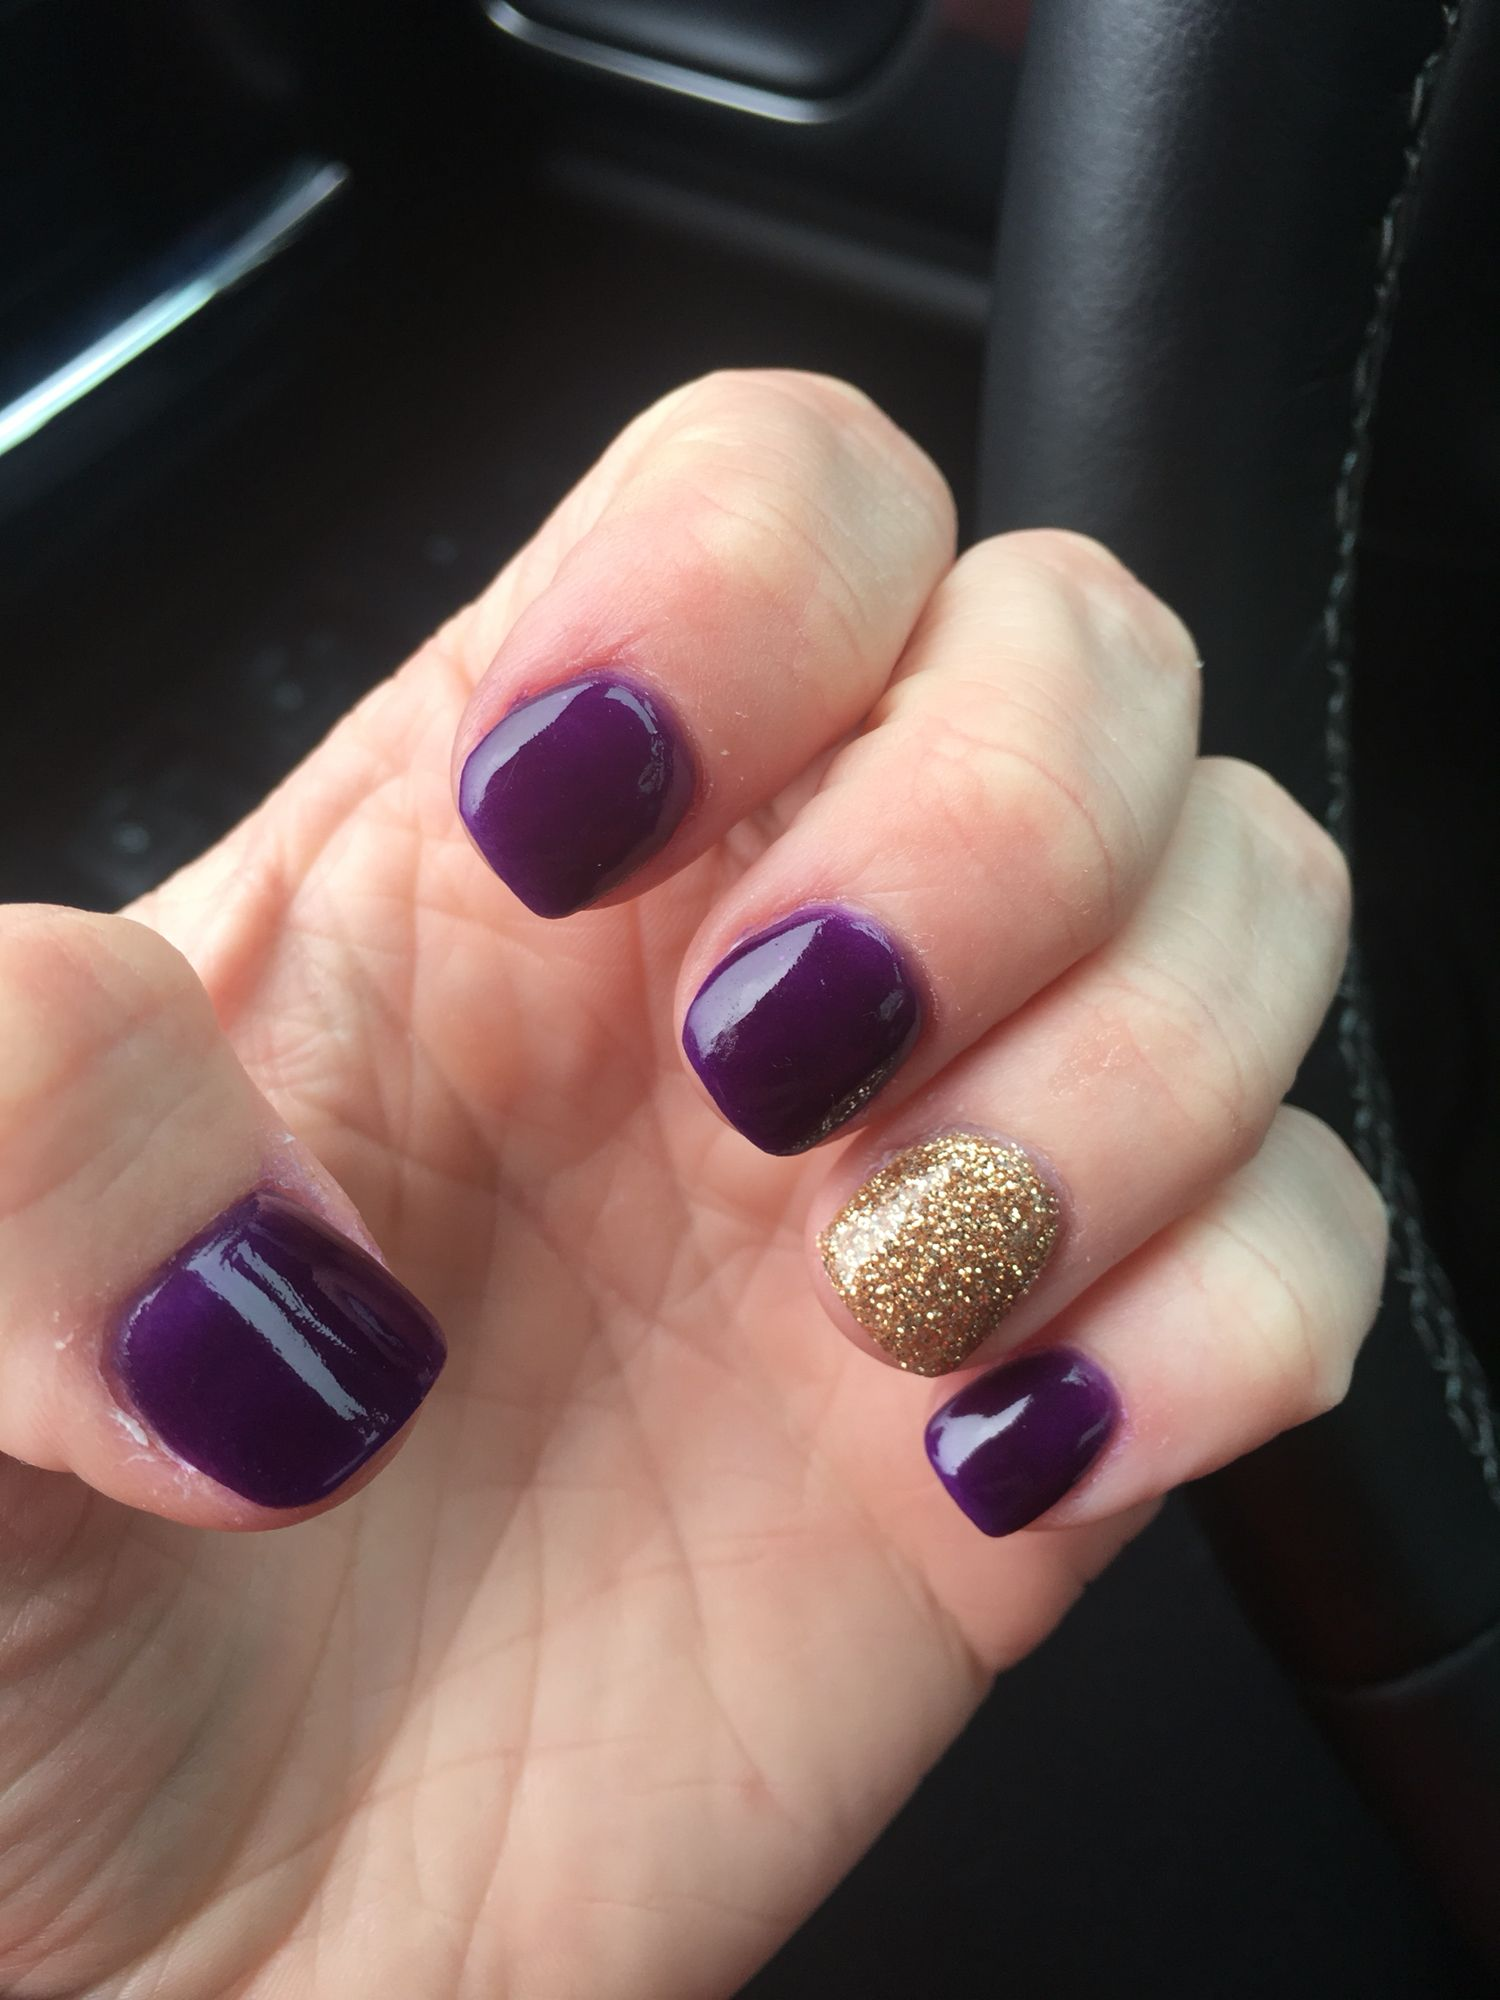 Anc dip purple and gold nails sparkle | Dipped nails, Gold ...